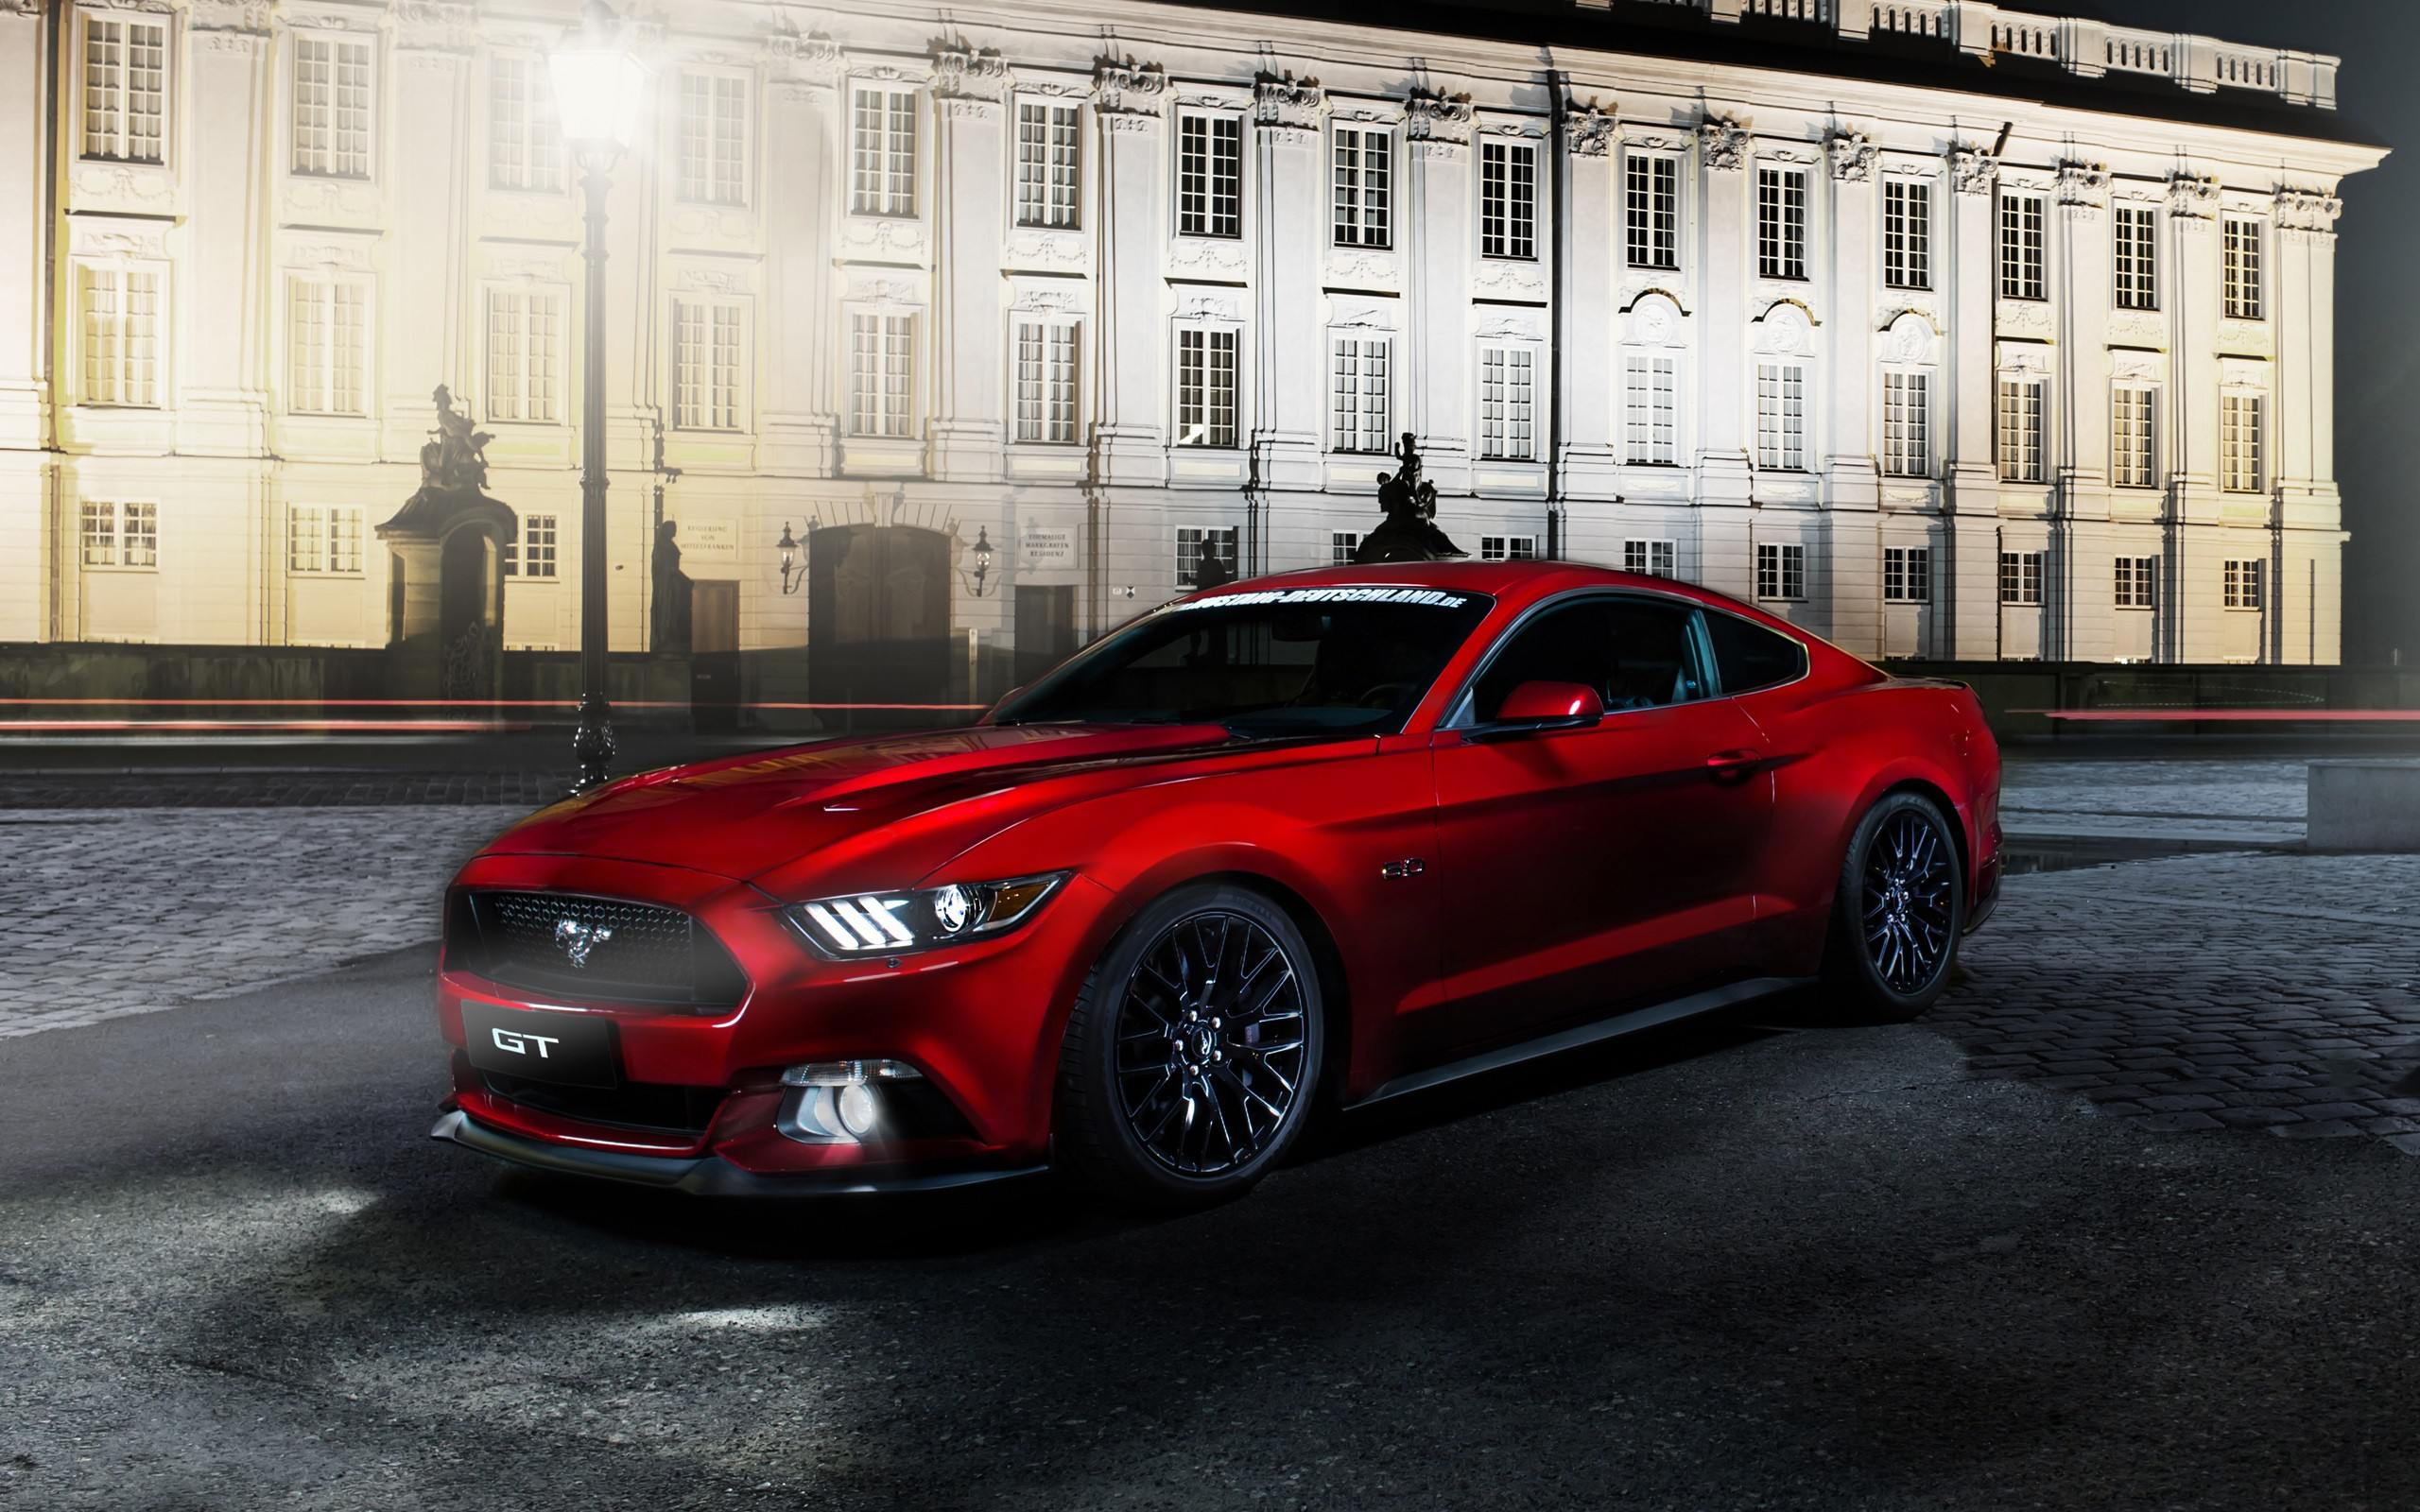 ford mustang gt 2015 wallpaper hd car wallpapers. Black Bedroom Furniture Sets. Home Design Ideas